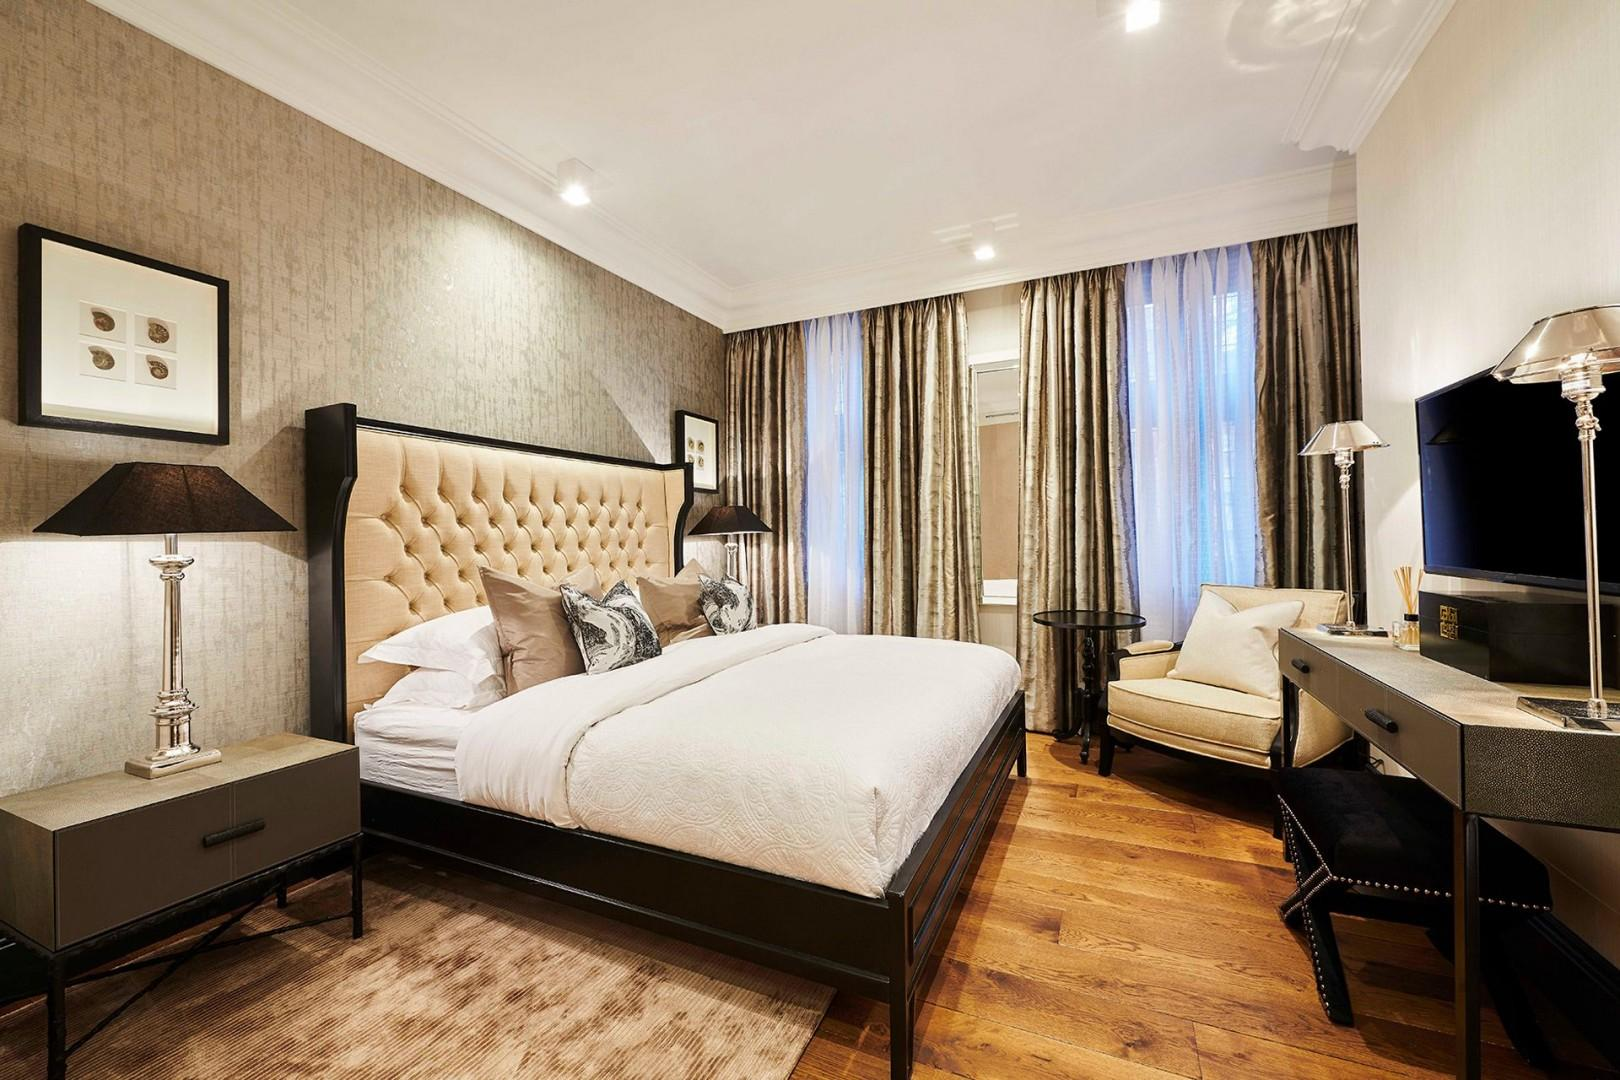 Sumptuous first bedroom with designer furnishings